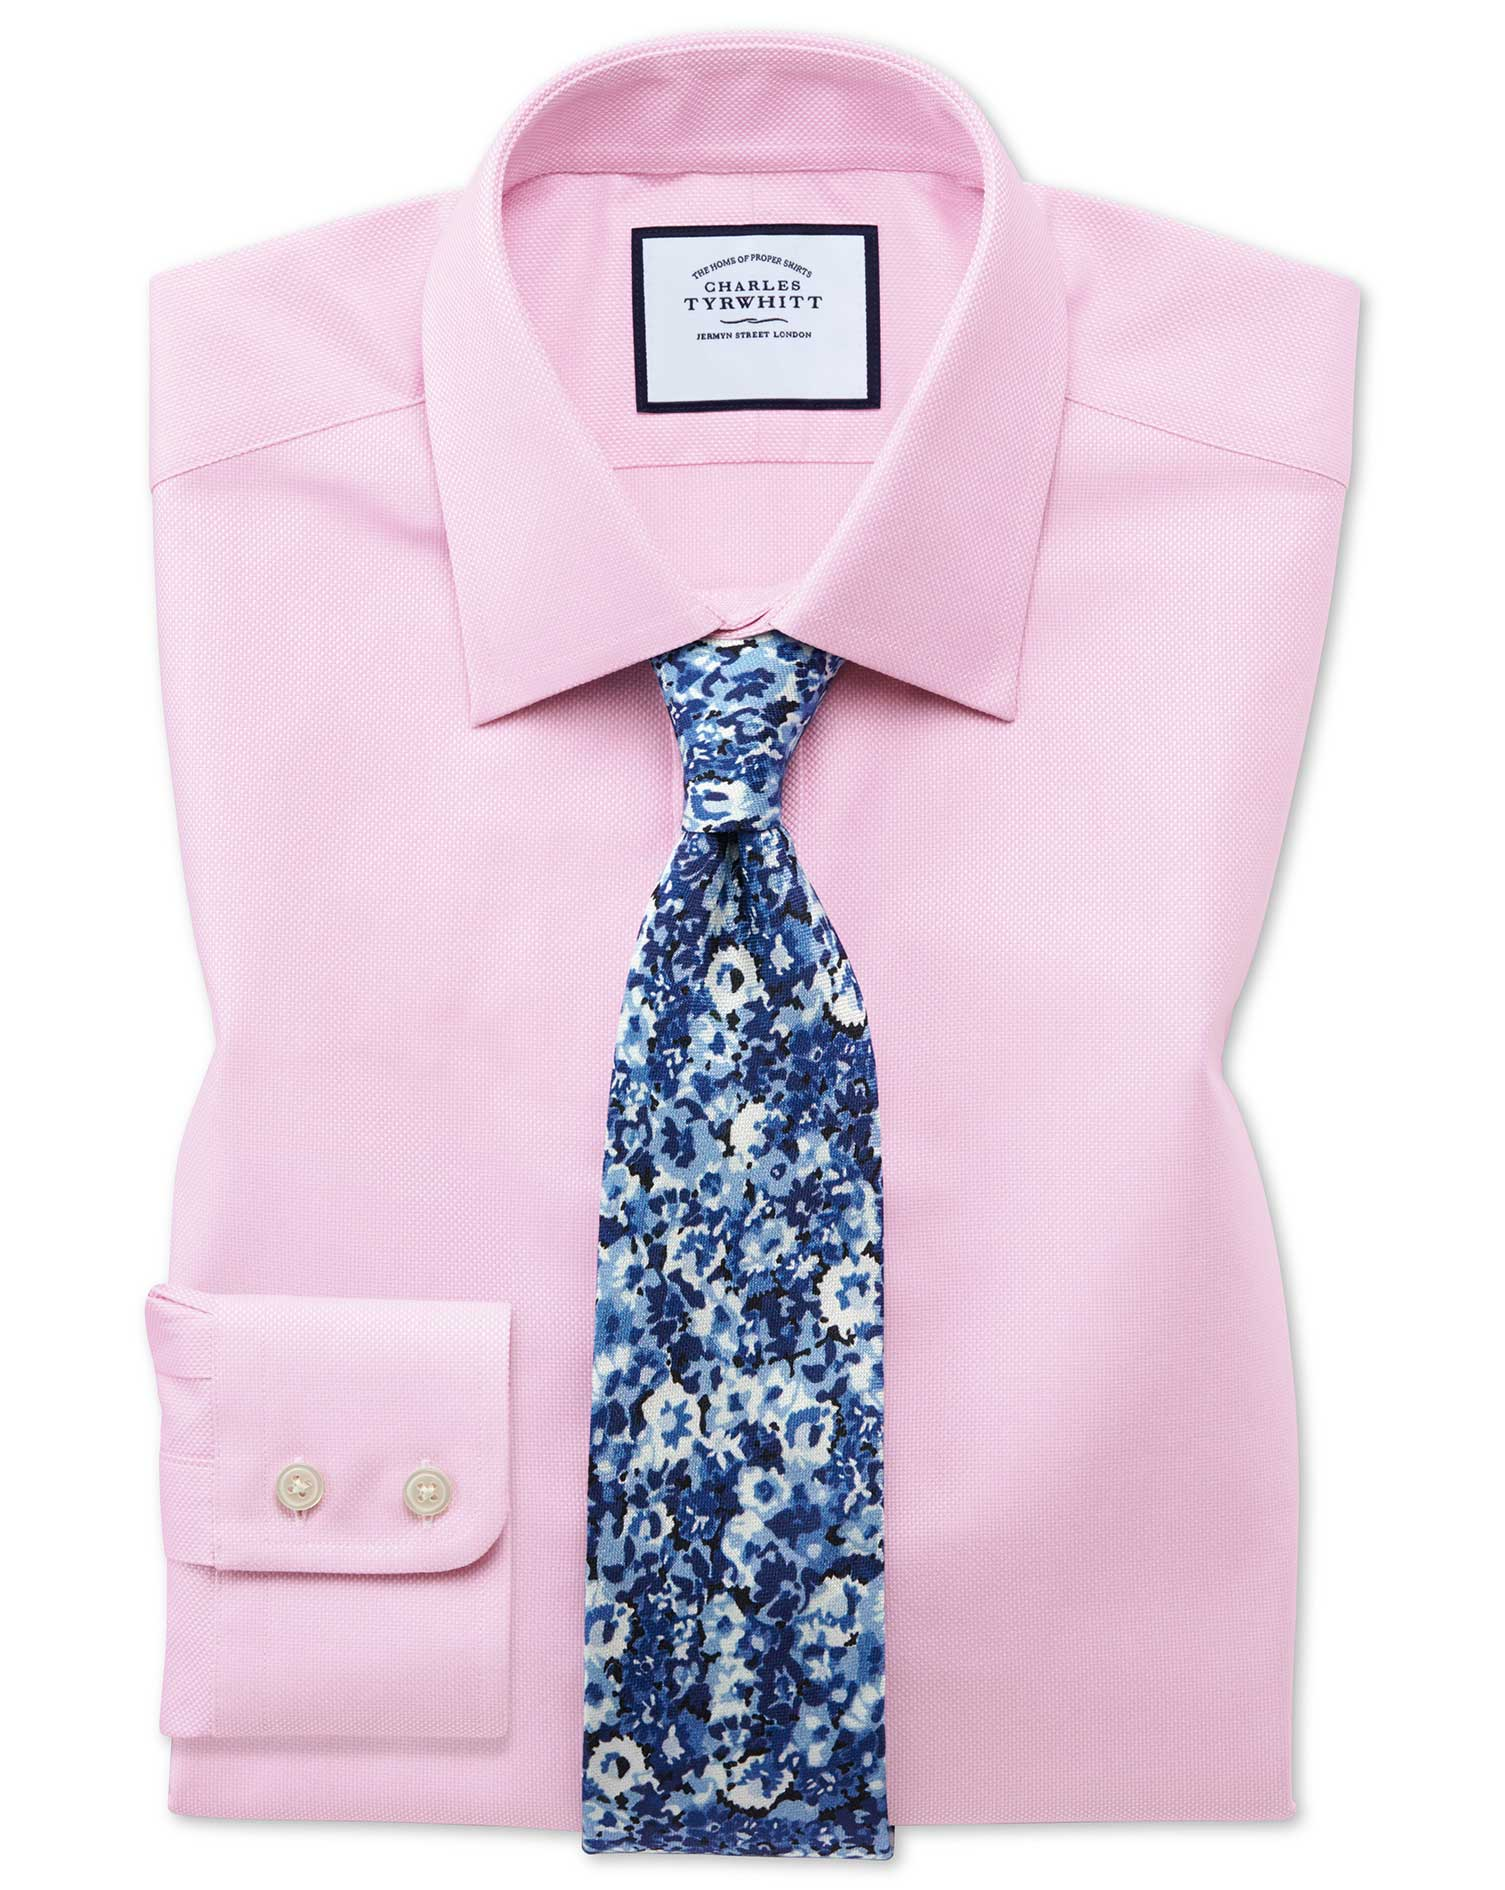 Classic Fit Egyptian Cotton Royal Oxford Pink Formal Shirt Double Cuff Size 15.5/33 by Charles Tyrwh